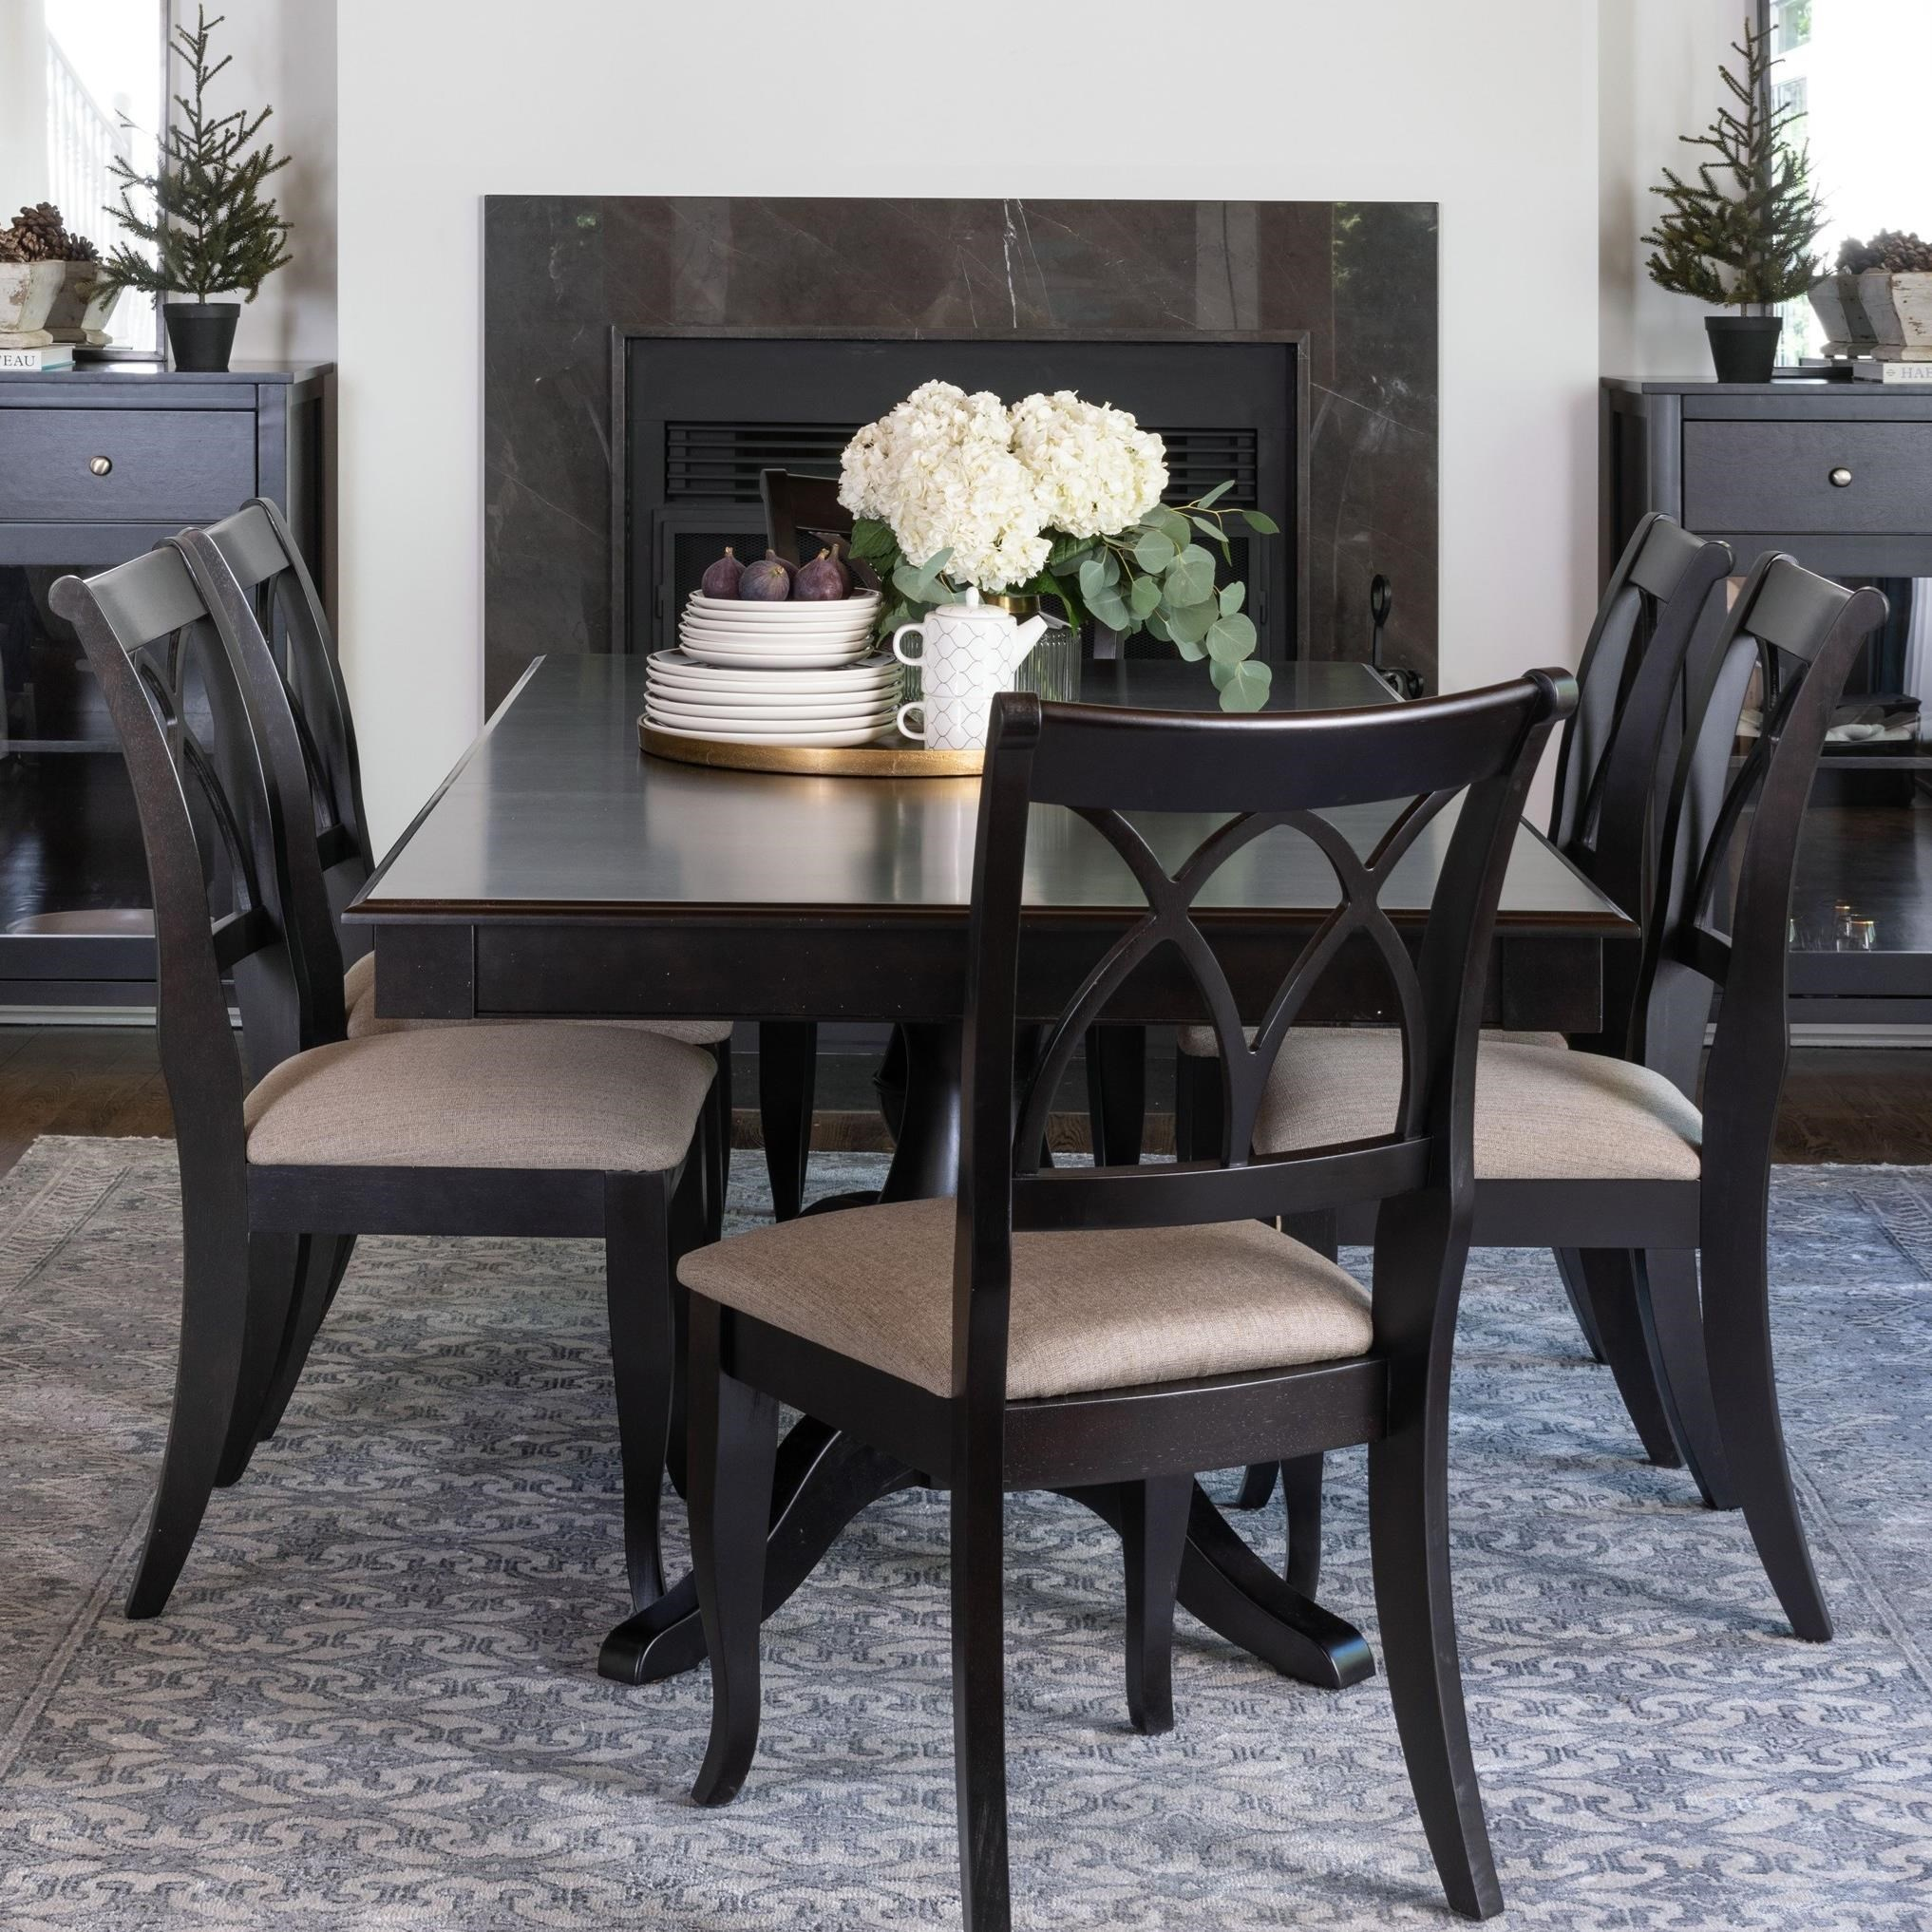 Gourmet - Custom Dining Customizable Rectangular Table Set by Canadel at Dinette Depot